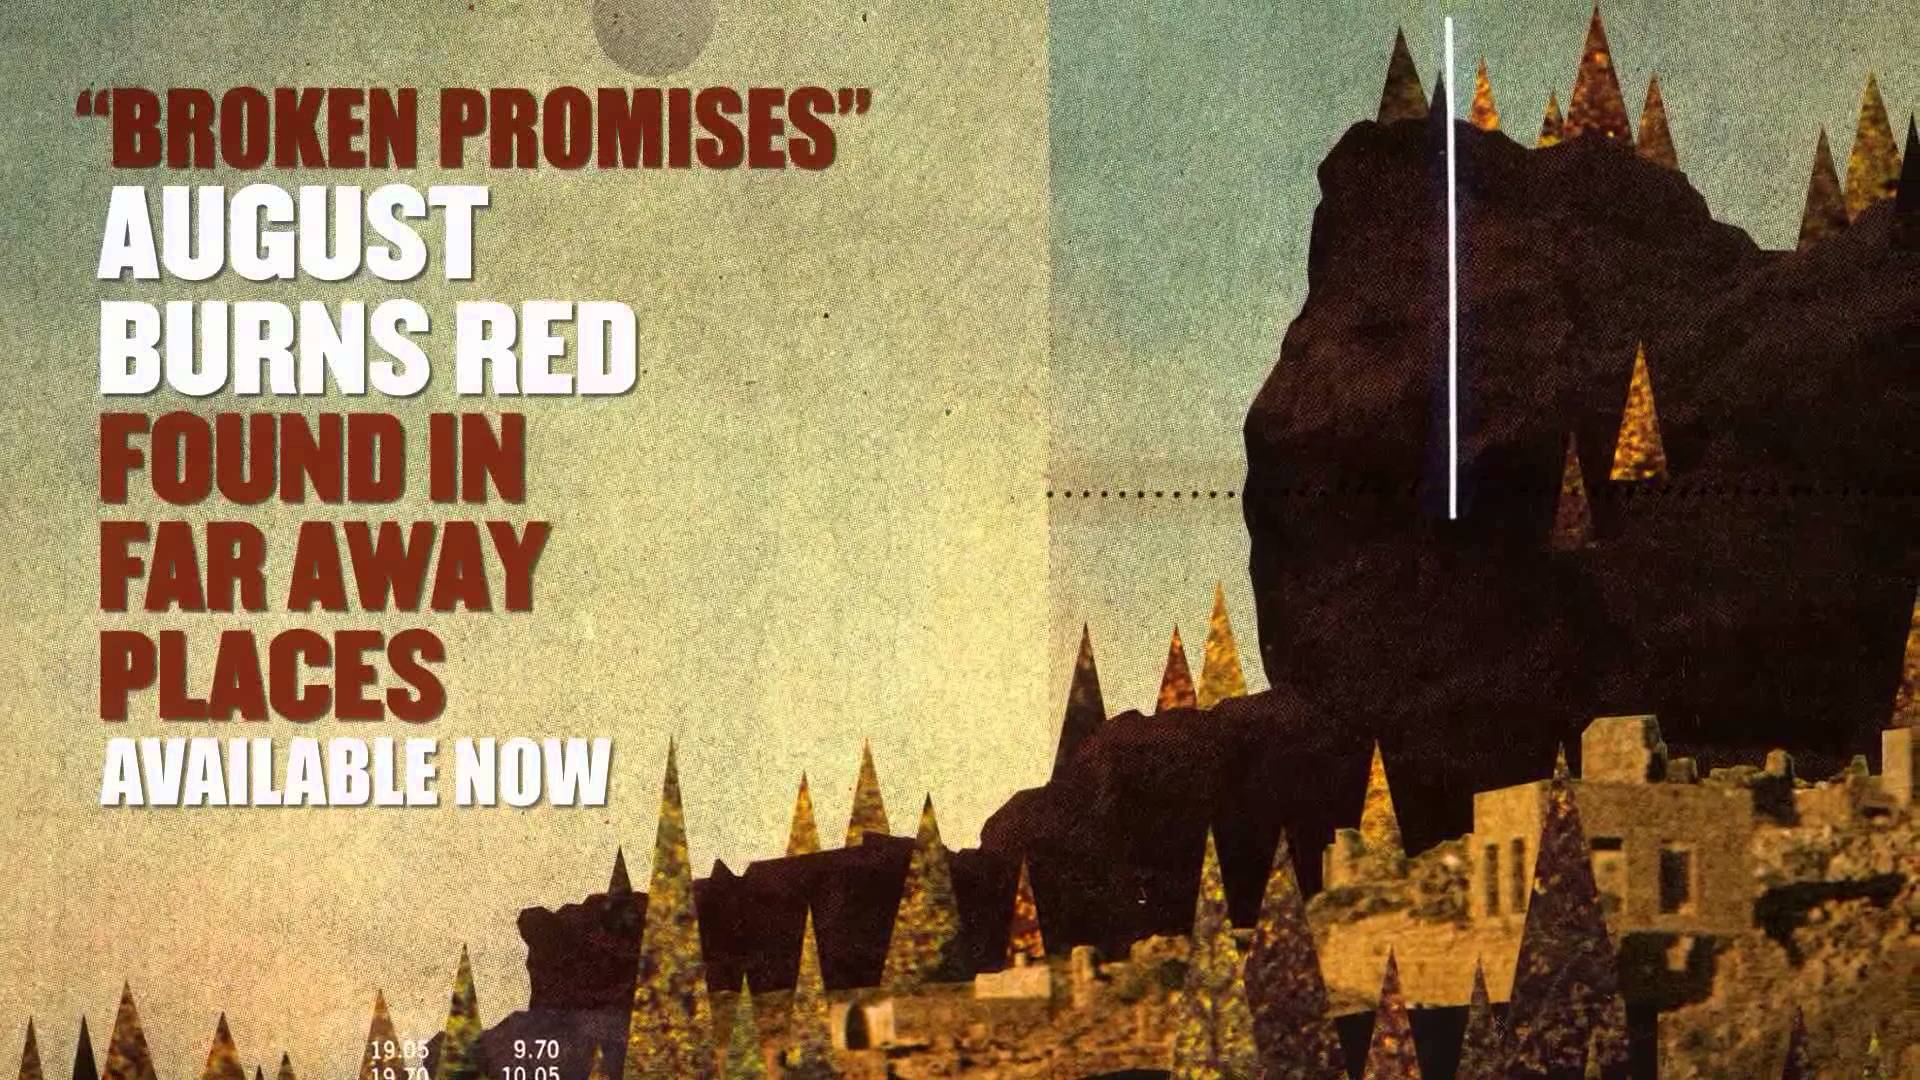 August Burns Red - Broken Promises